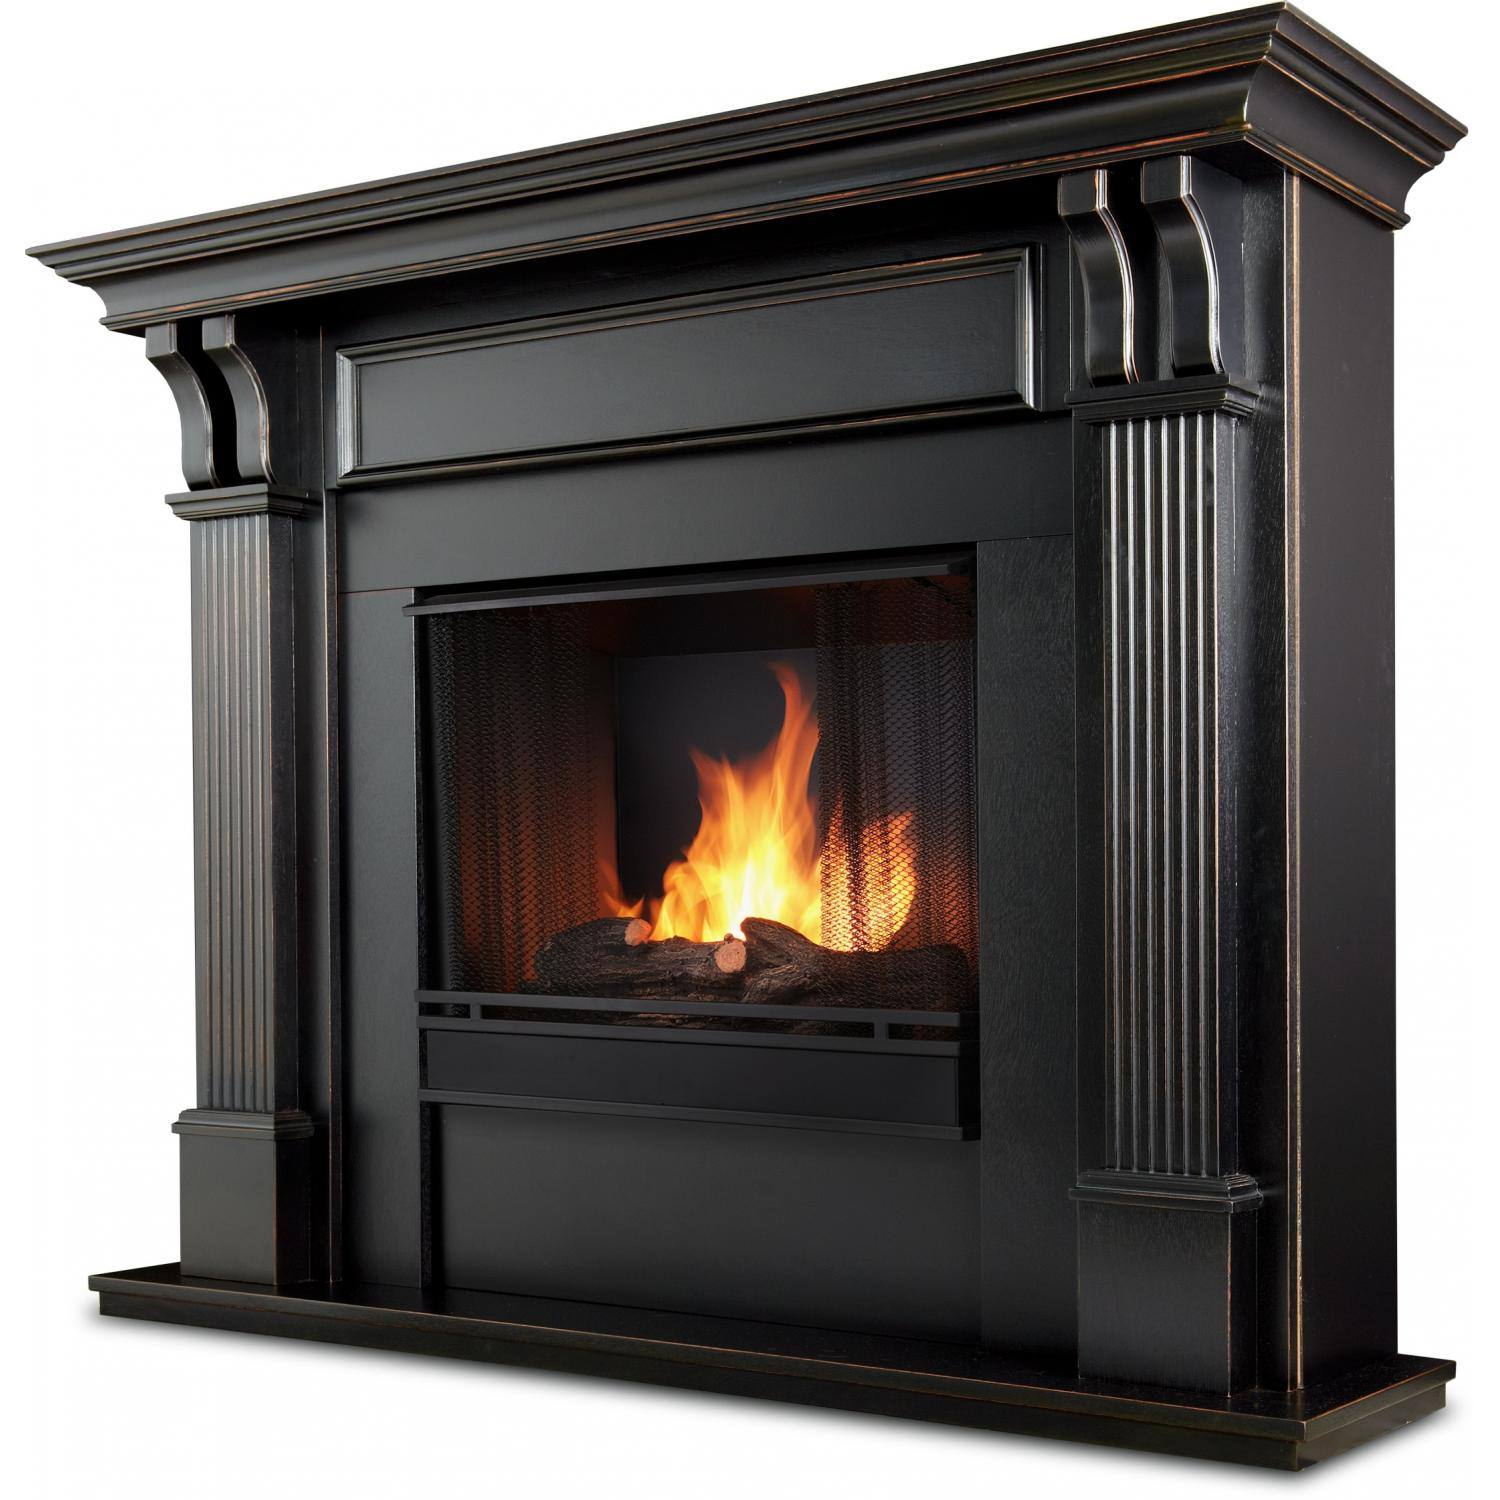 Picture of Real Flame Ashley 48-Inch Gel Fireplace - Blackwash